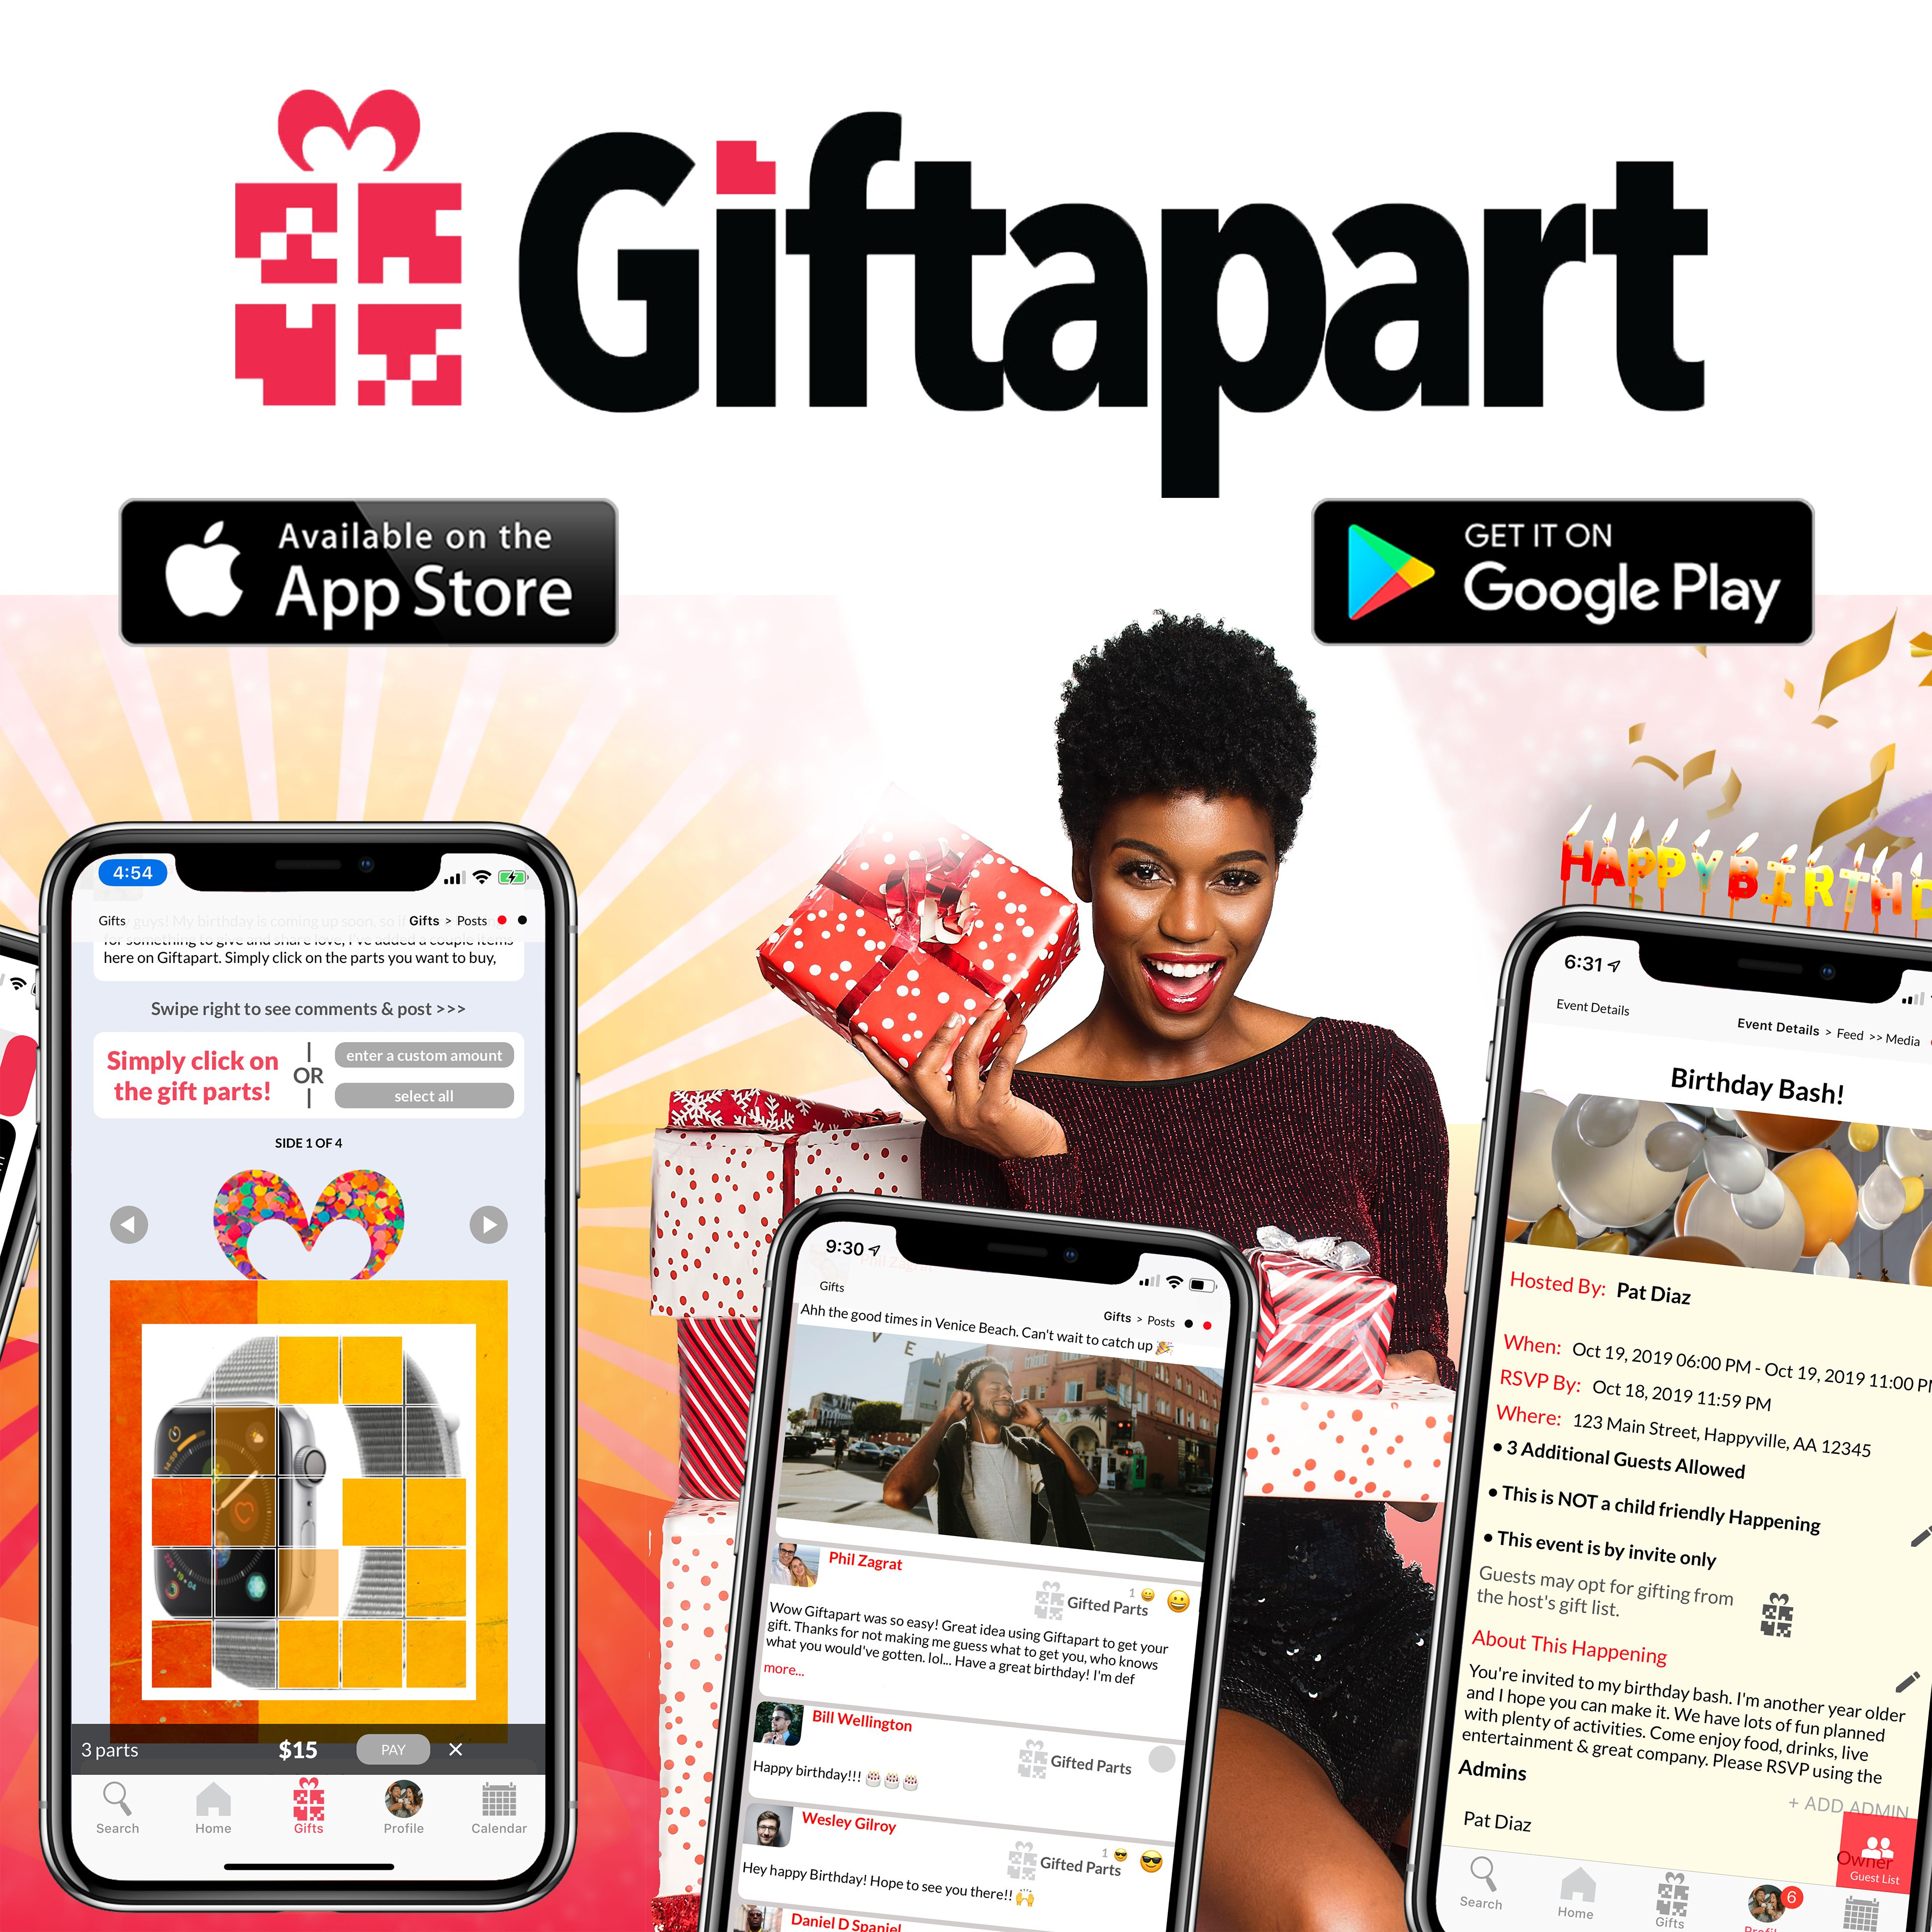 Giftapart's beta App is avail on iOS & Android https